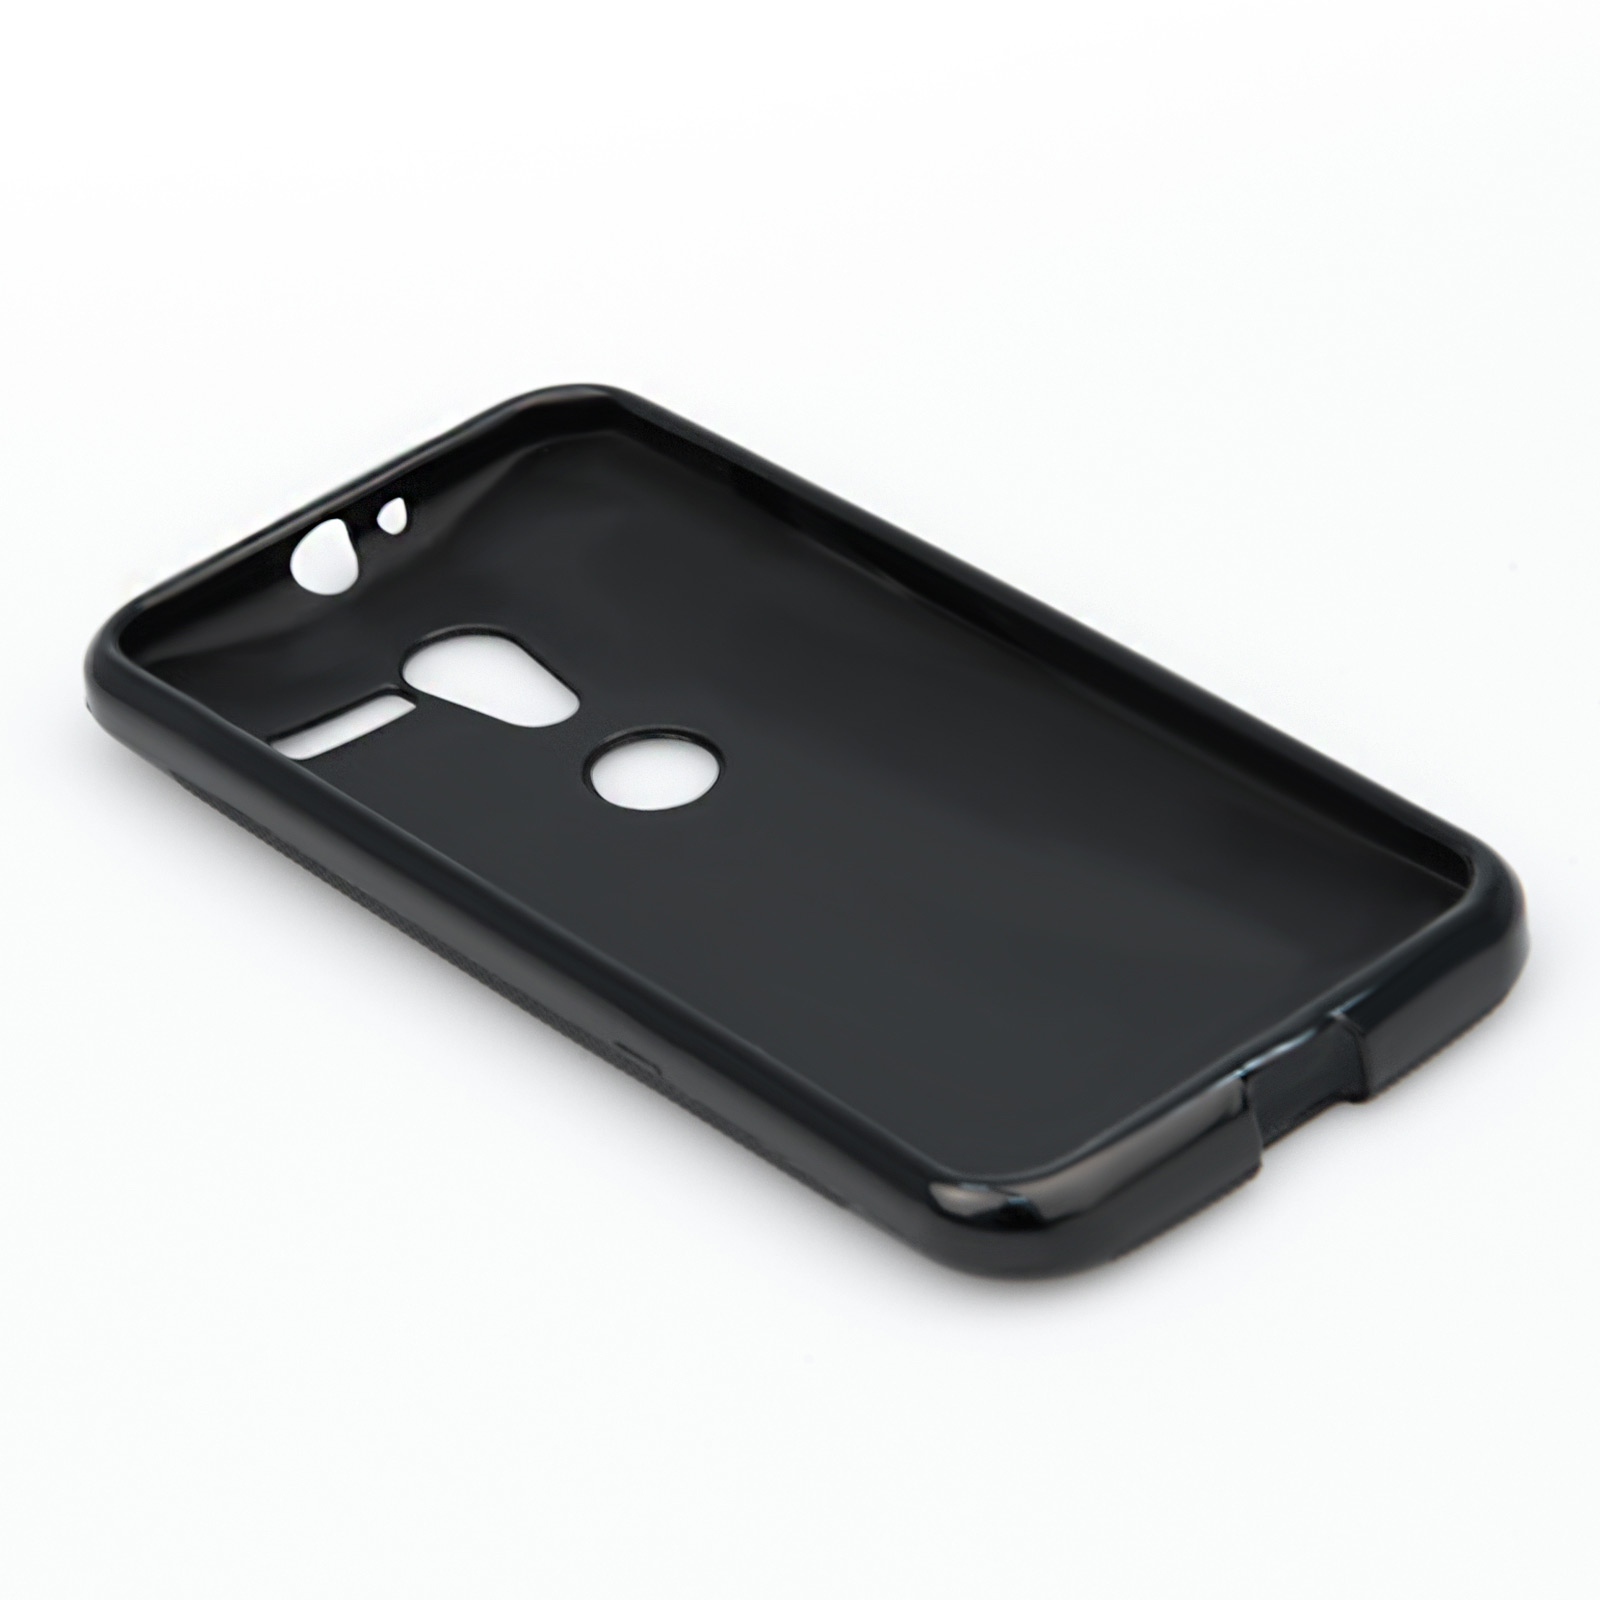 YouSave Accessories Motorola Moto X Silicone Gel X-Line Case - Black